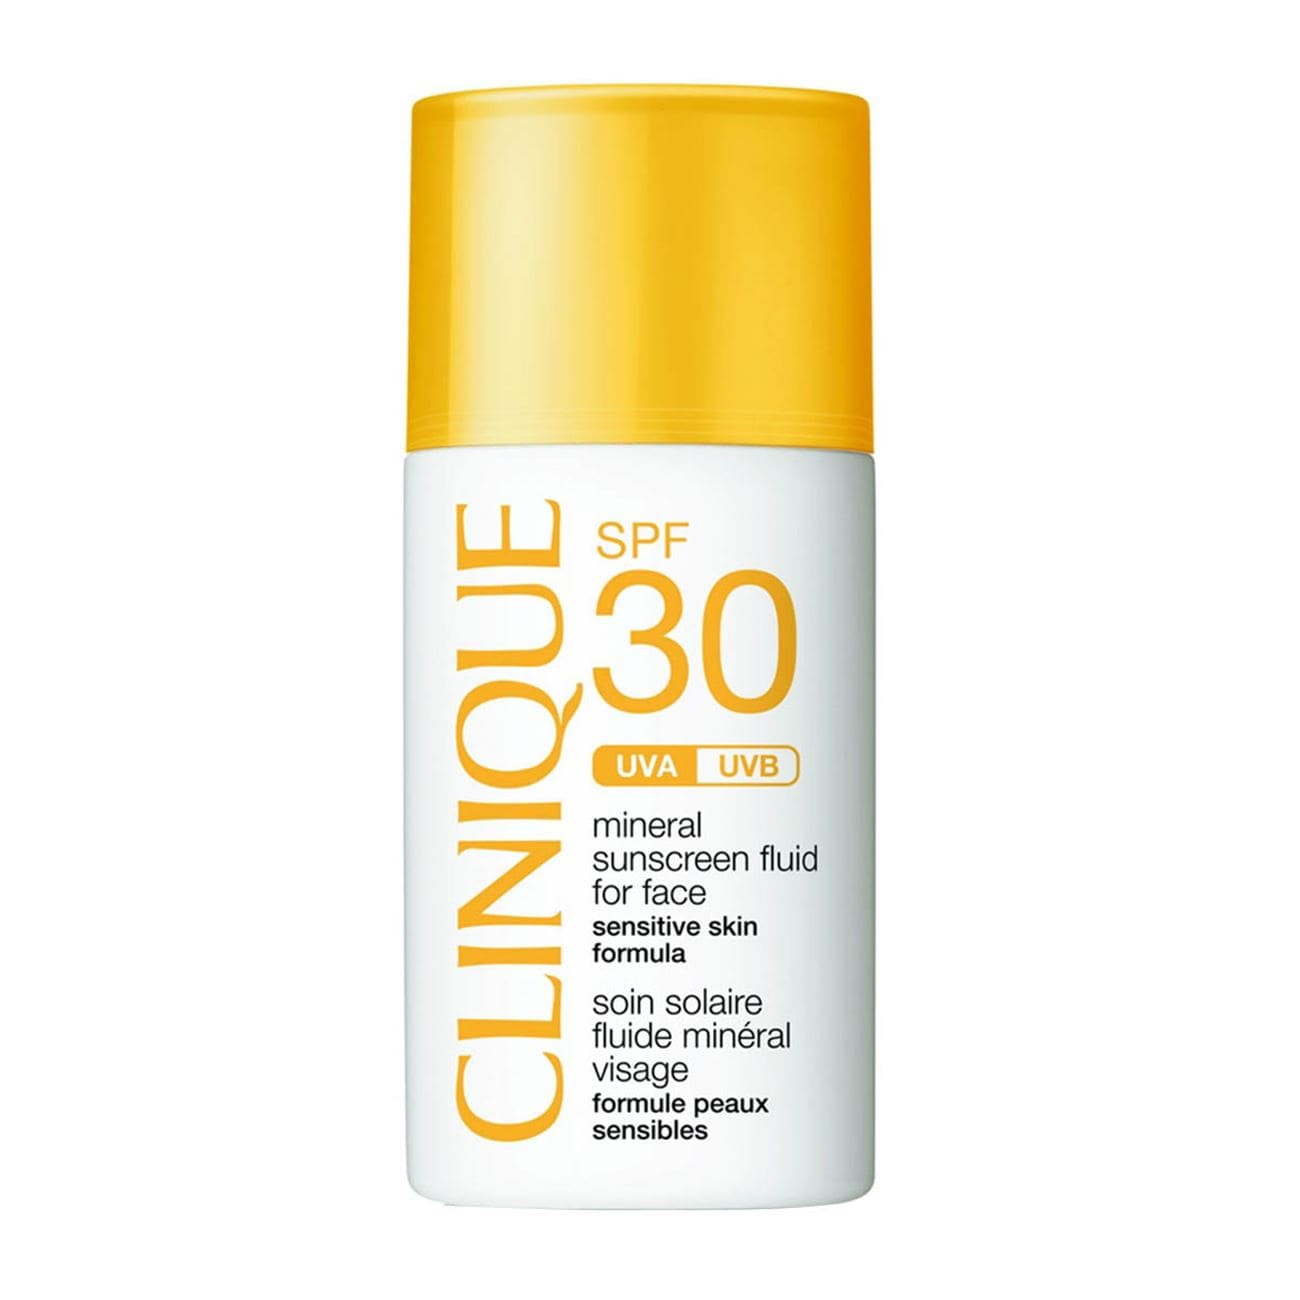 SPF 30 Mineral Fluid for Face